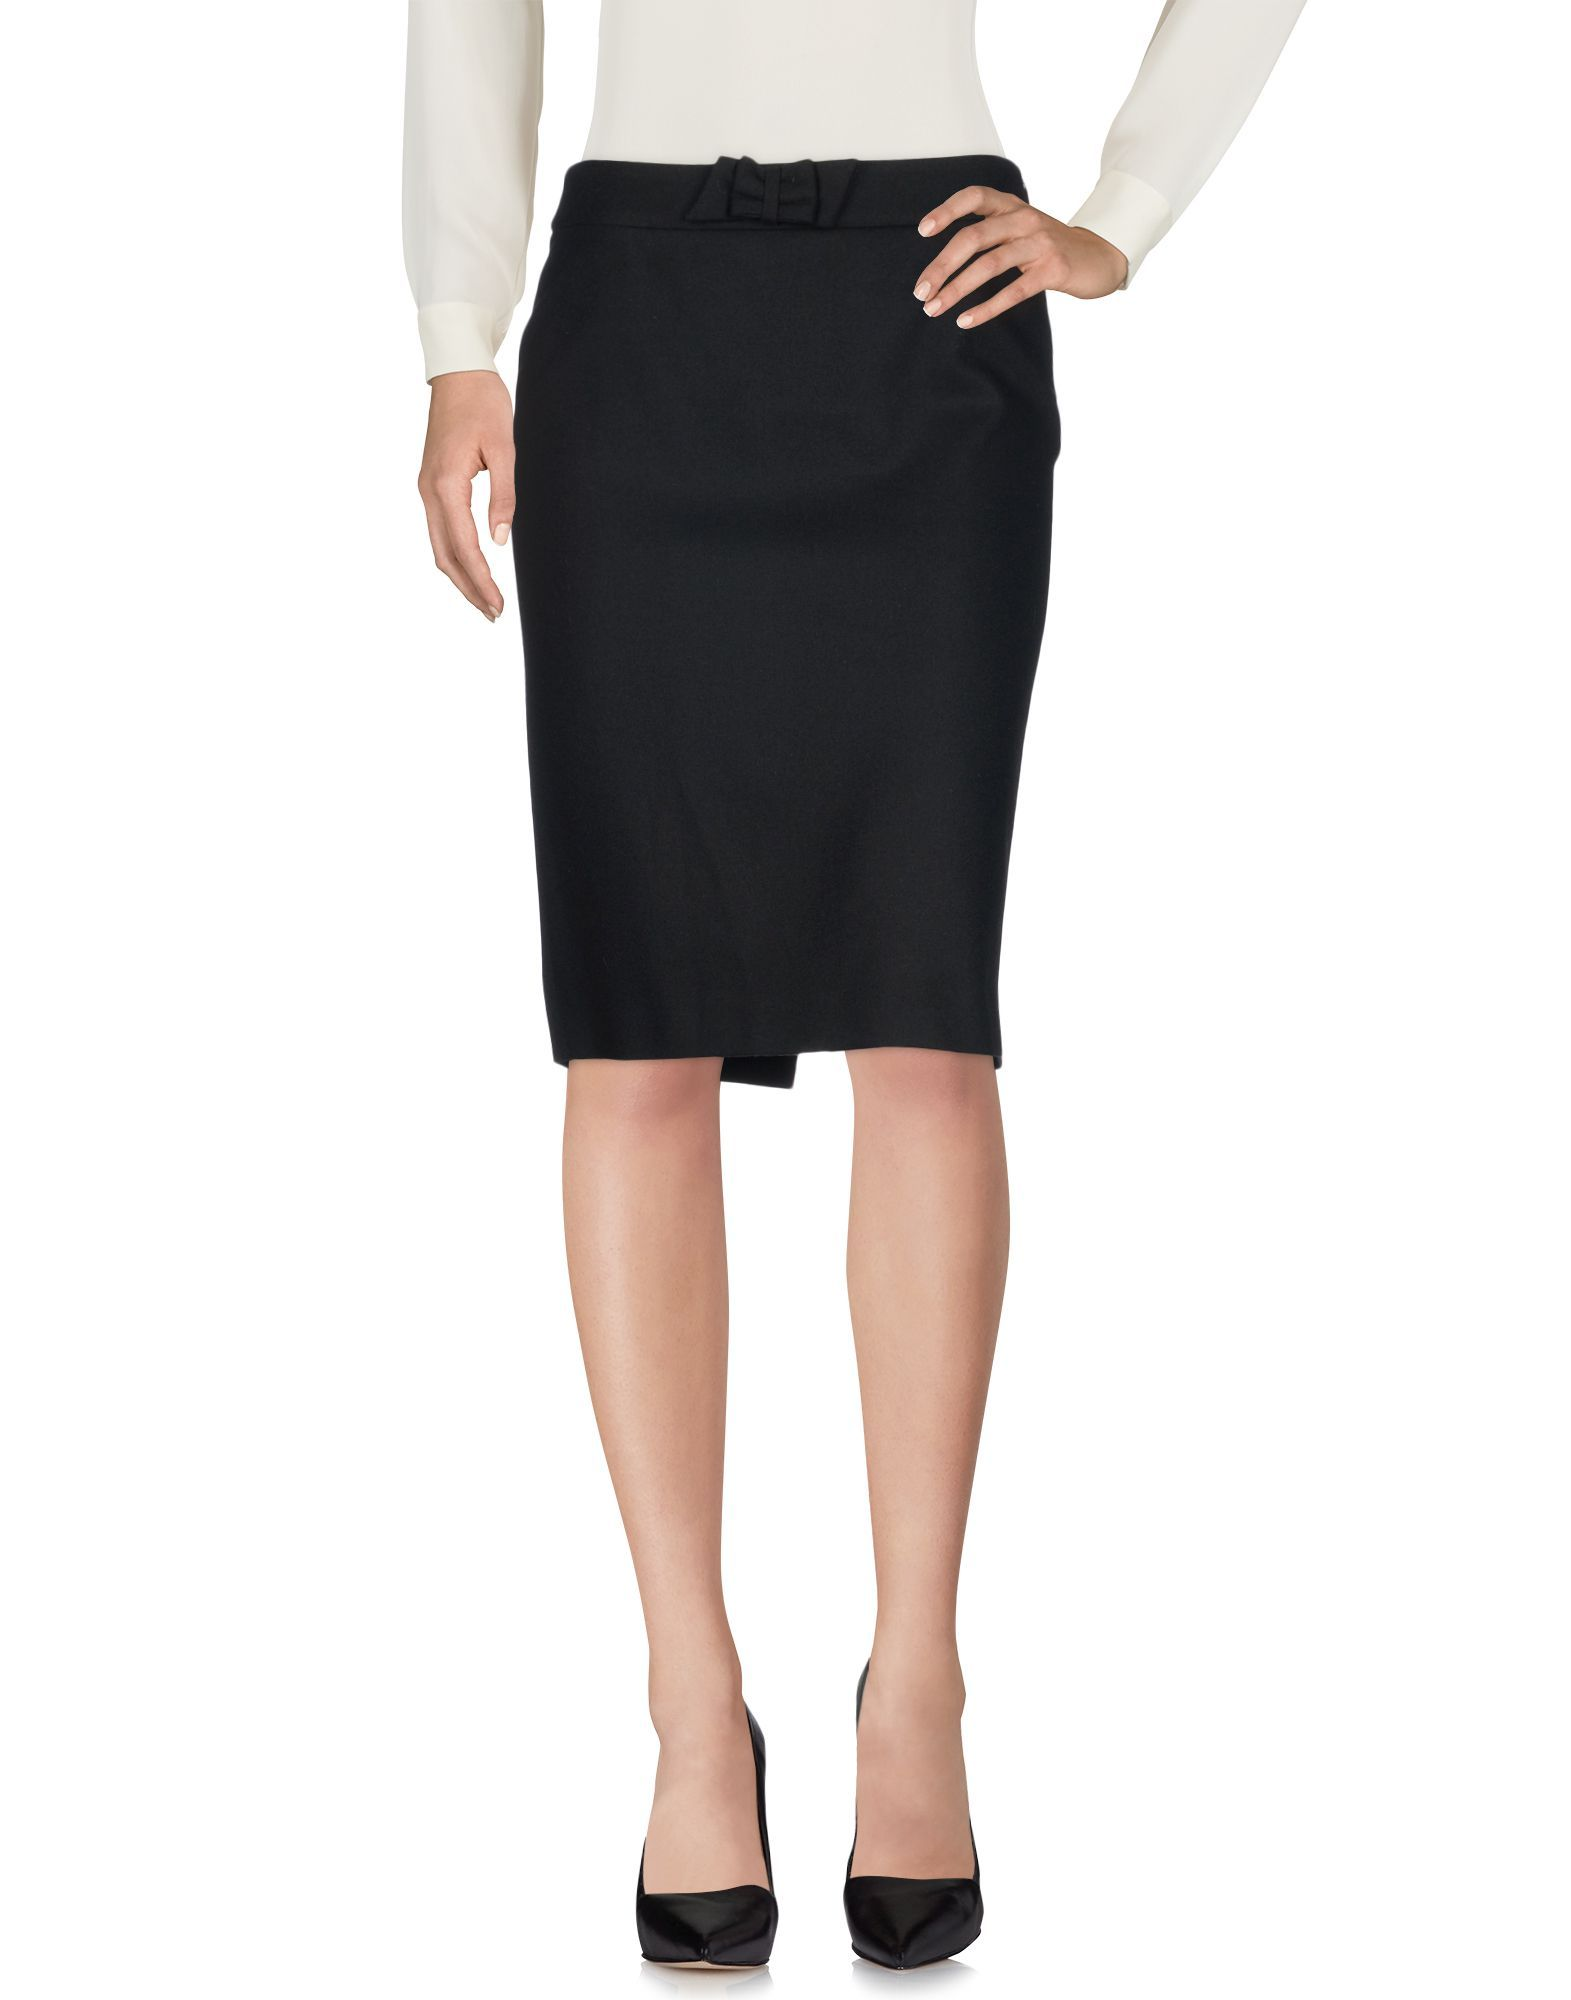 Mauro Grifoni Black Virgin Wool Skirt